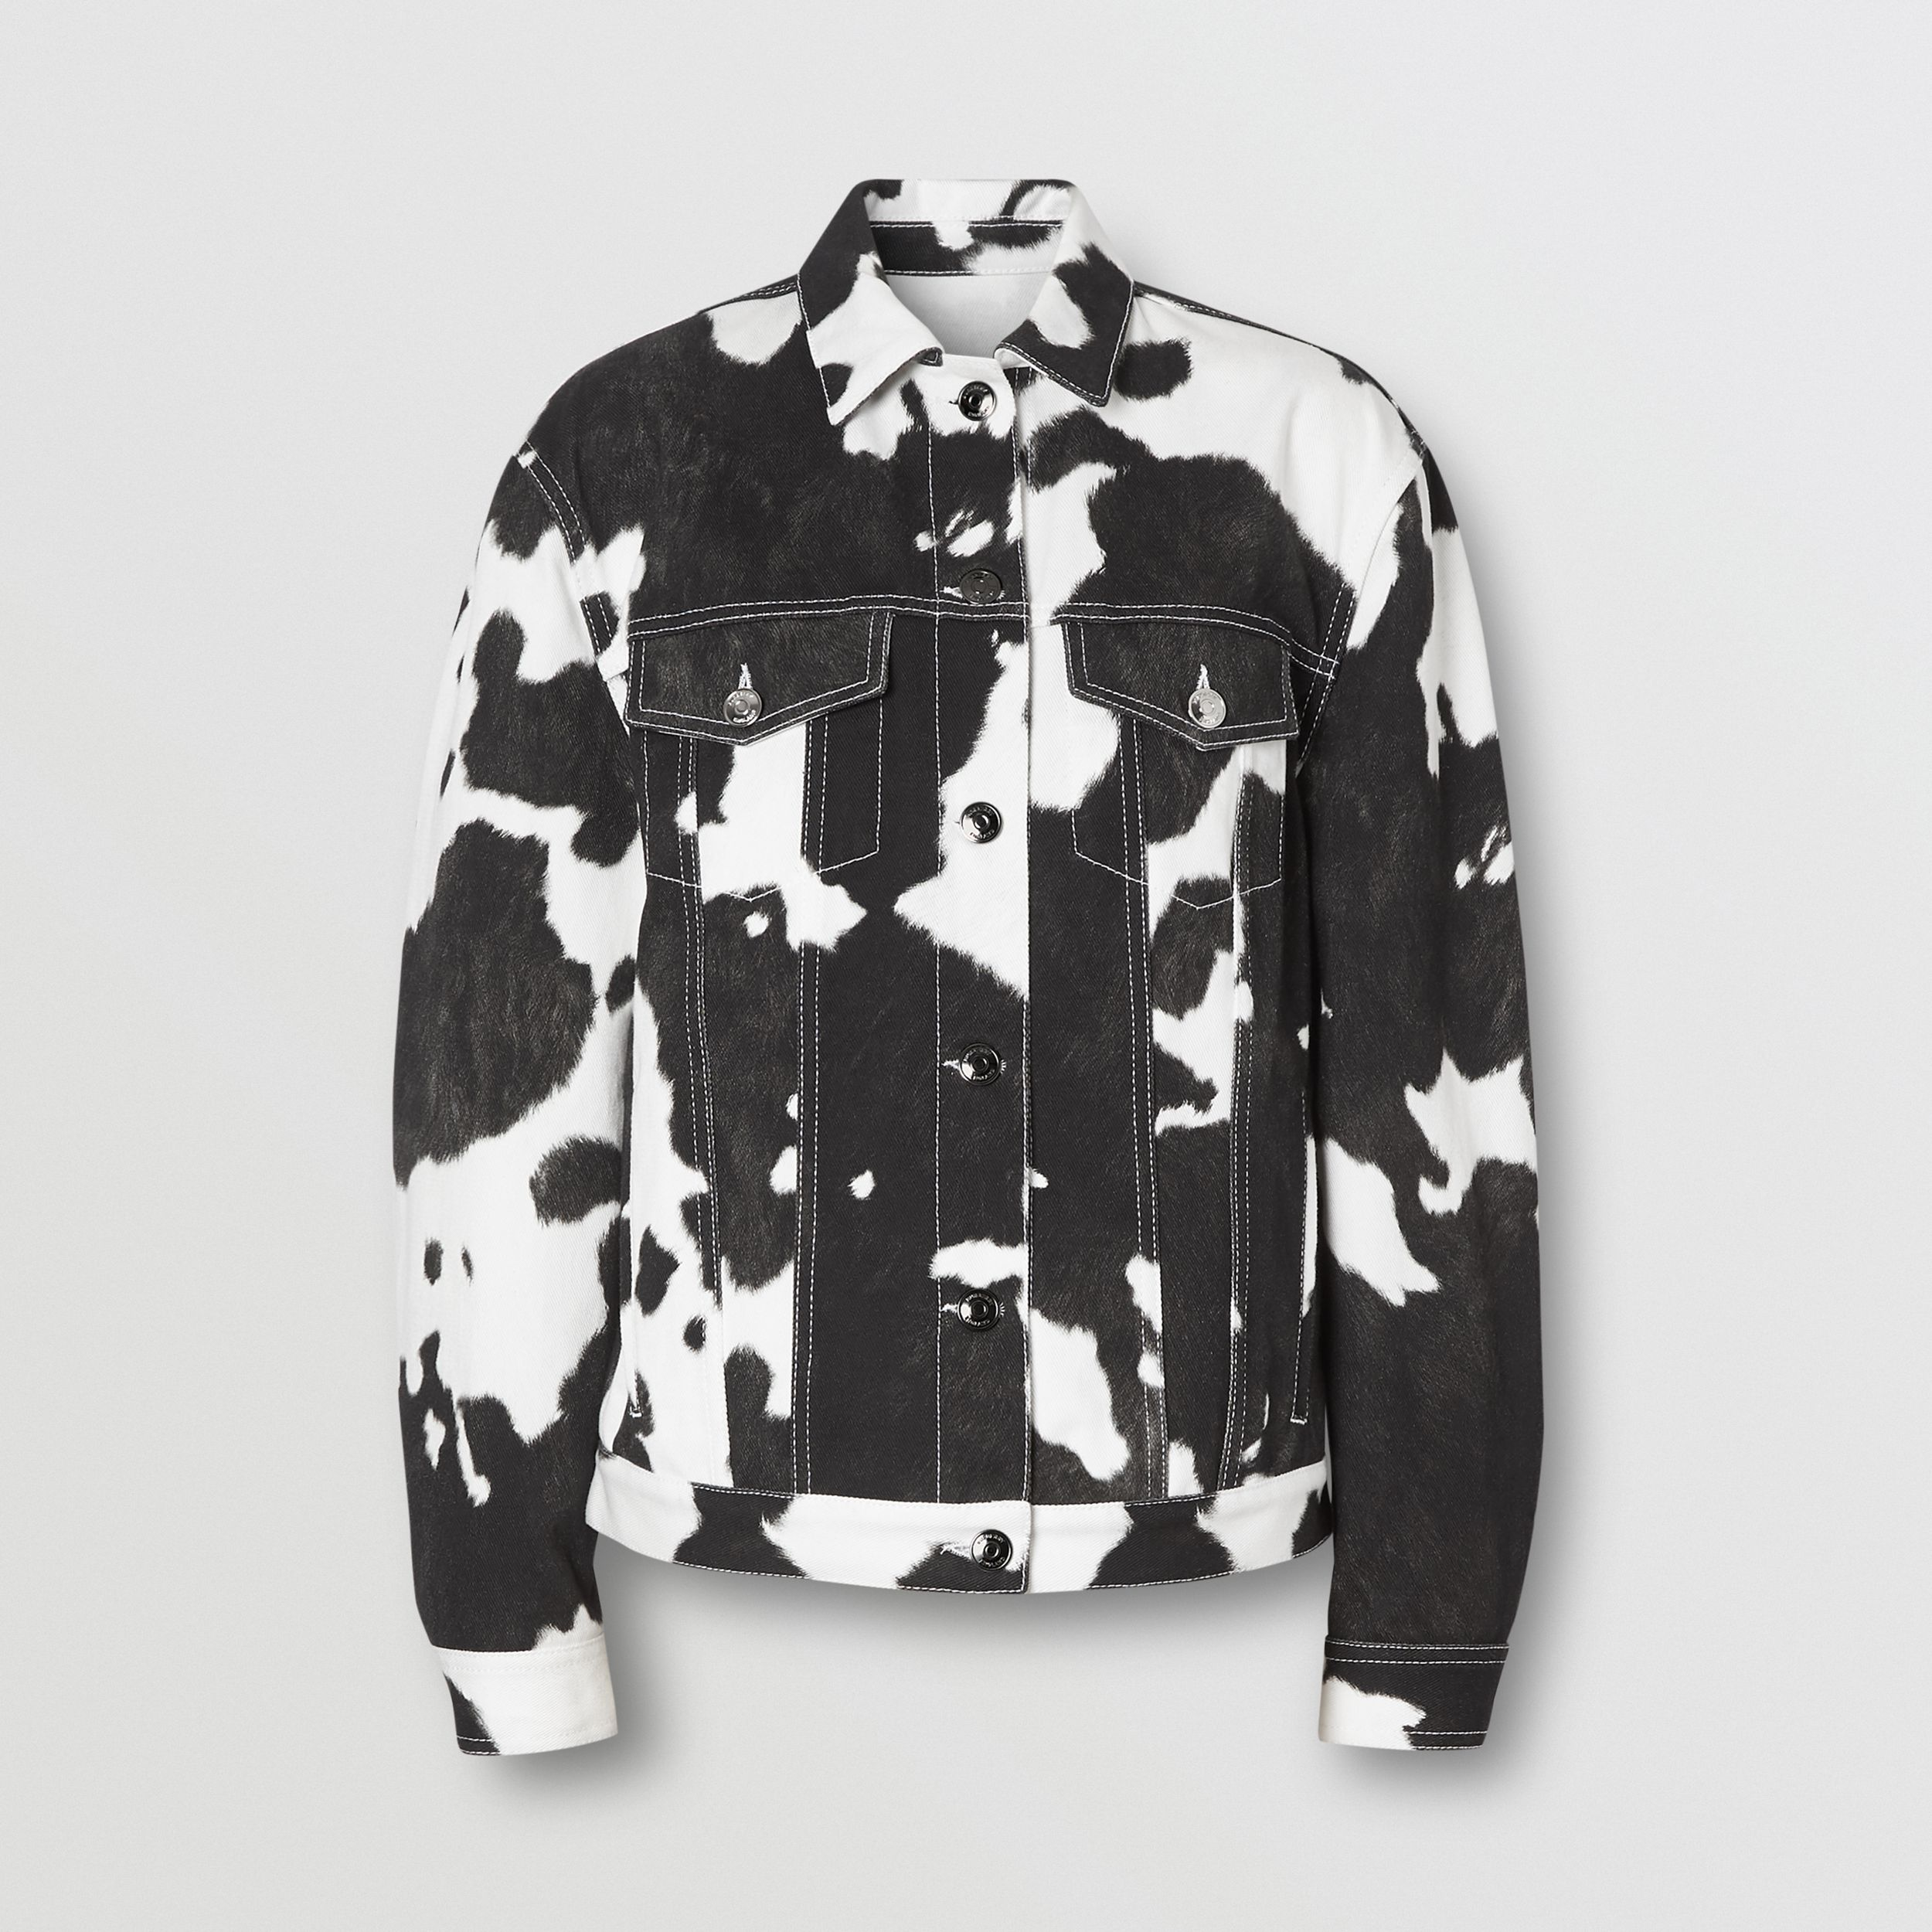 Cow Print Denim Jacket in Black | Burberry - 4